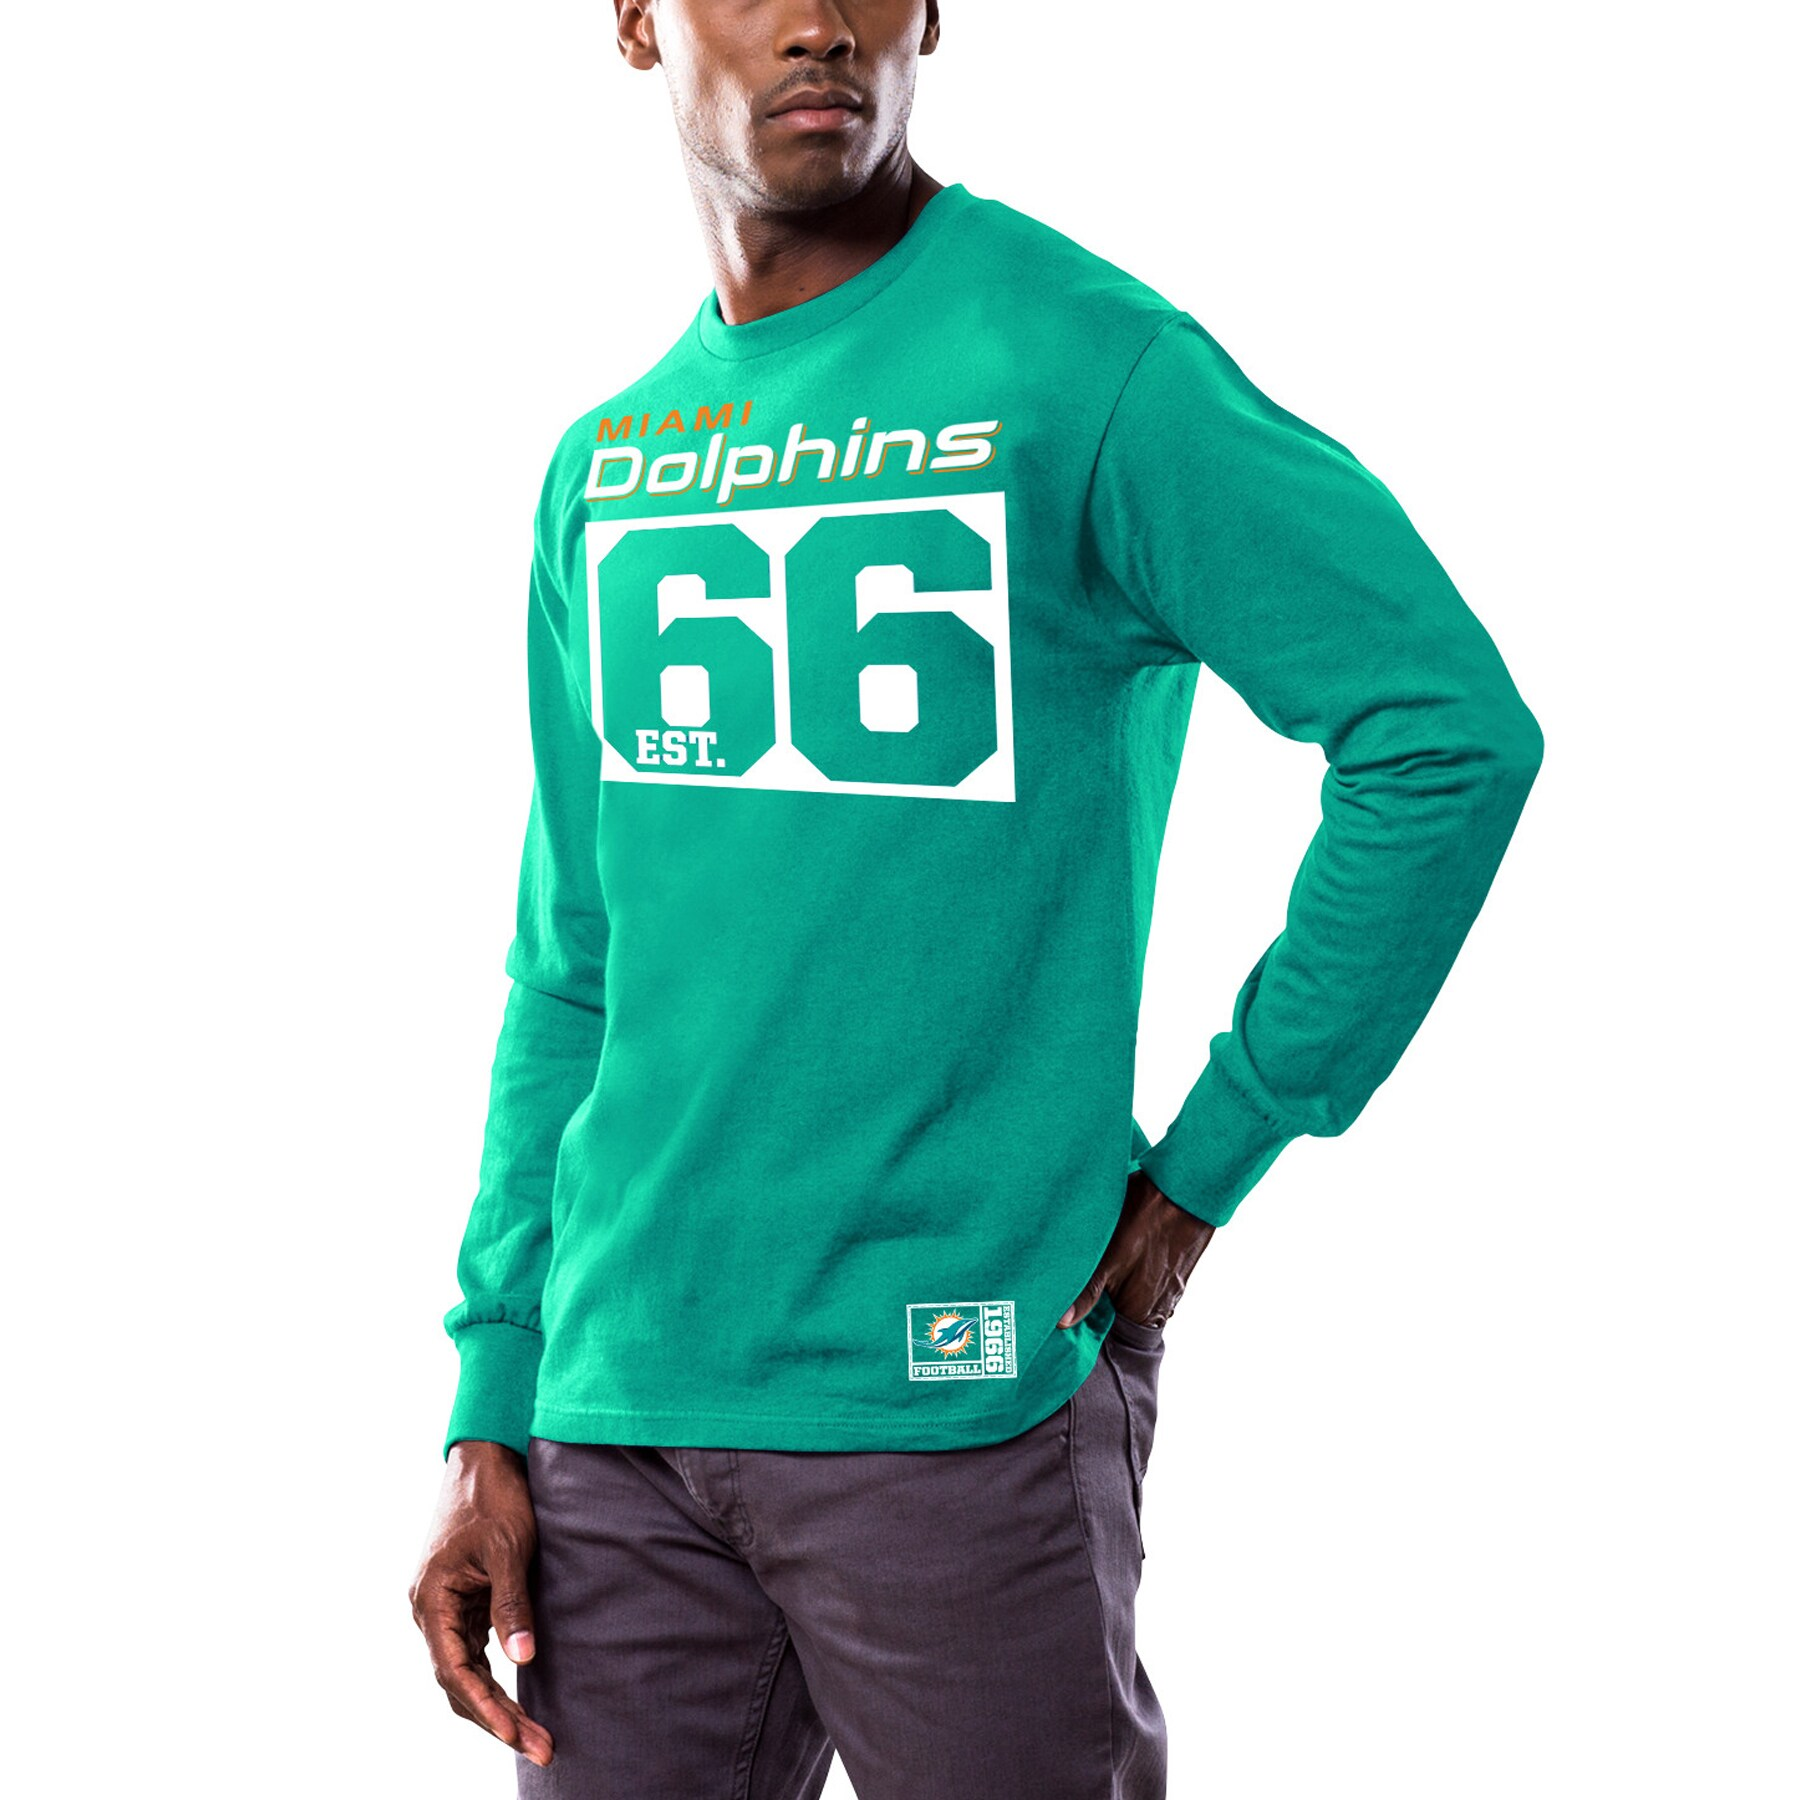 Miami Dolphins Majestic Favorable Result Long Sleeve T-Shirt - Aqua